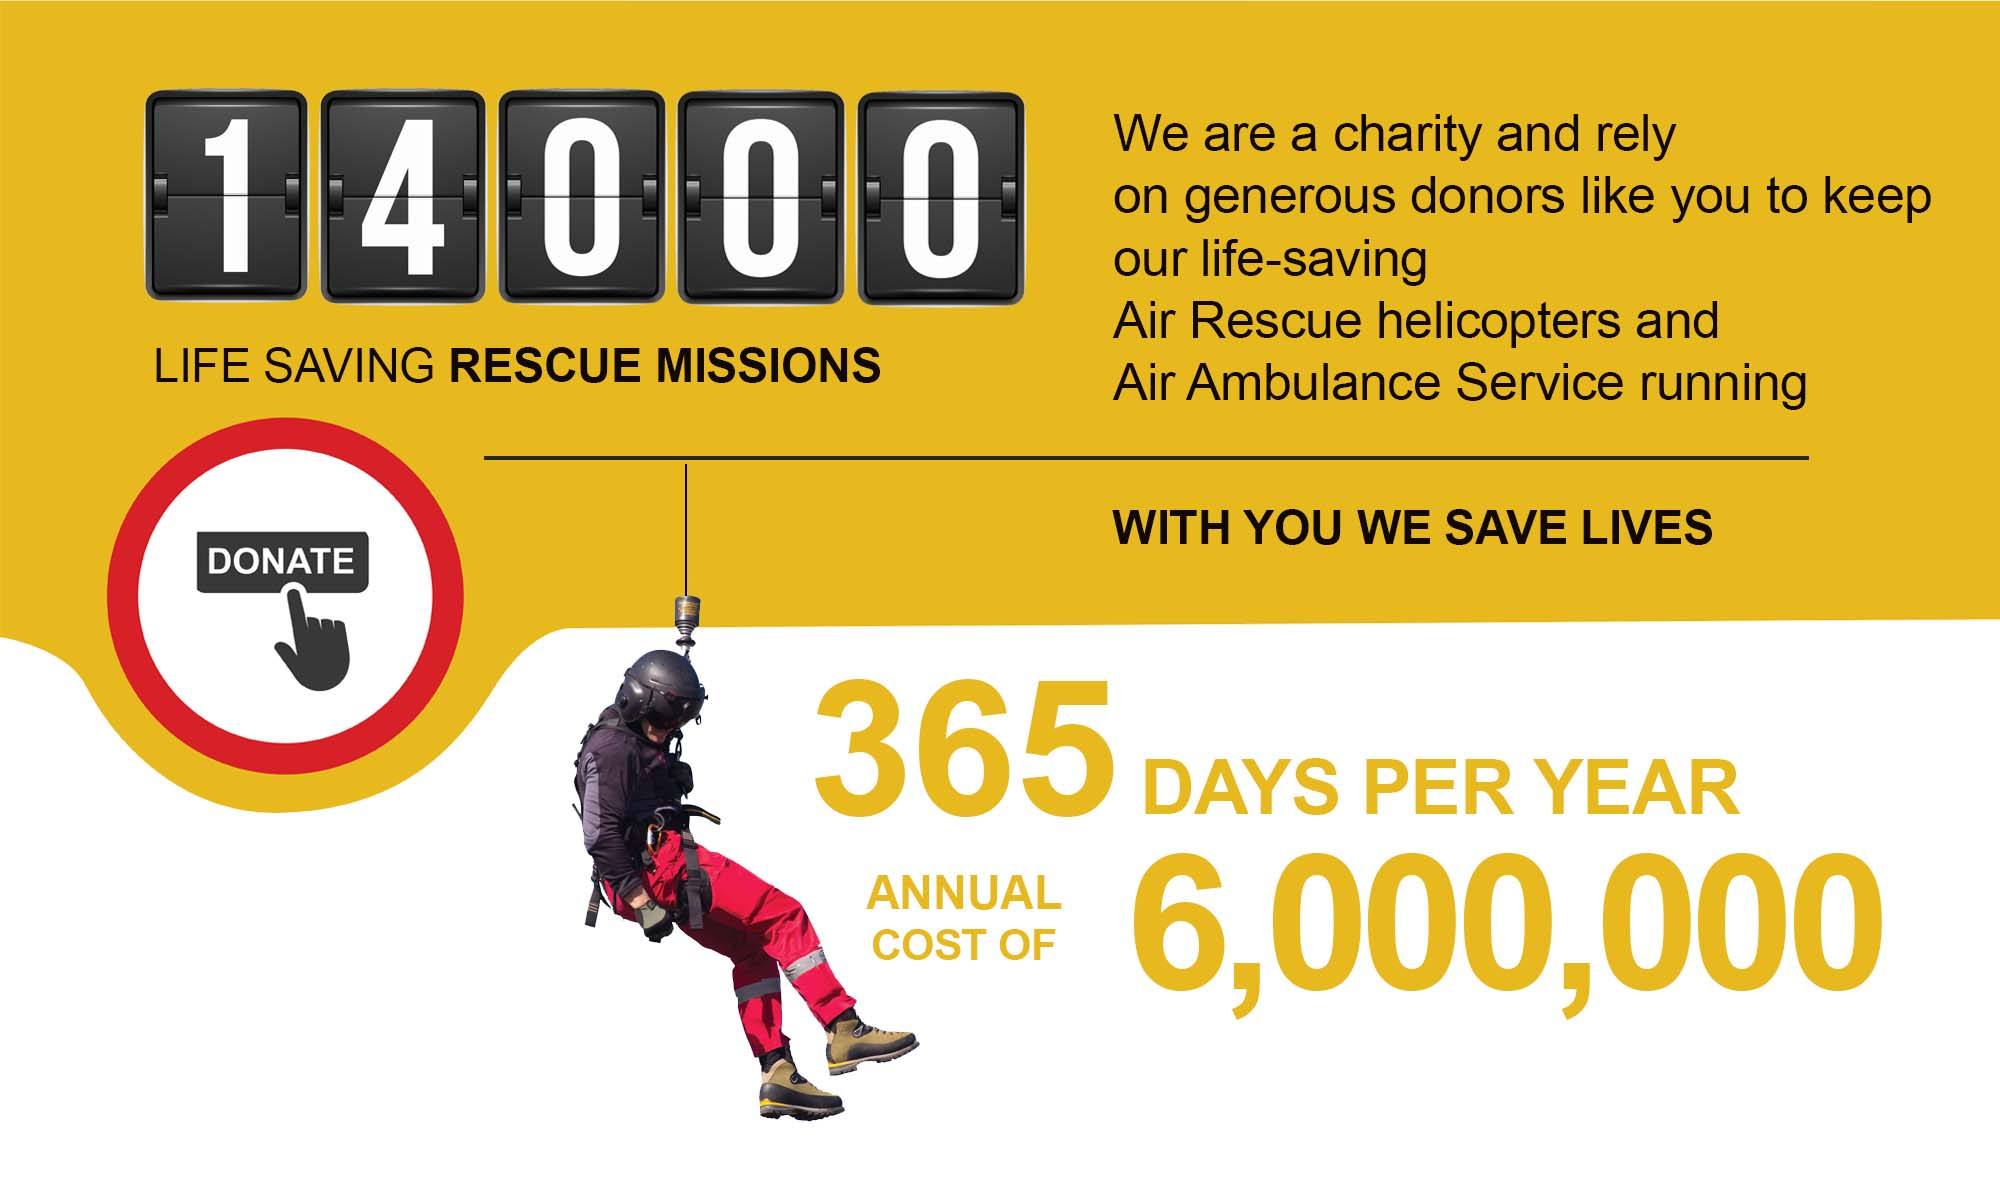 //www.airrescue.co.nz/wp-content/uploads/2020/08/air-rescue-missions.jpg